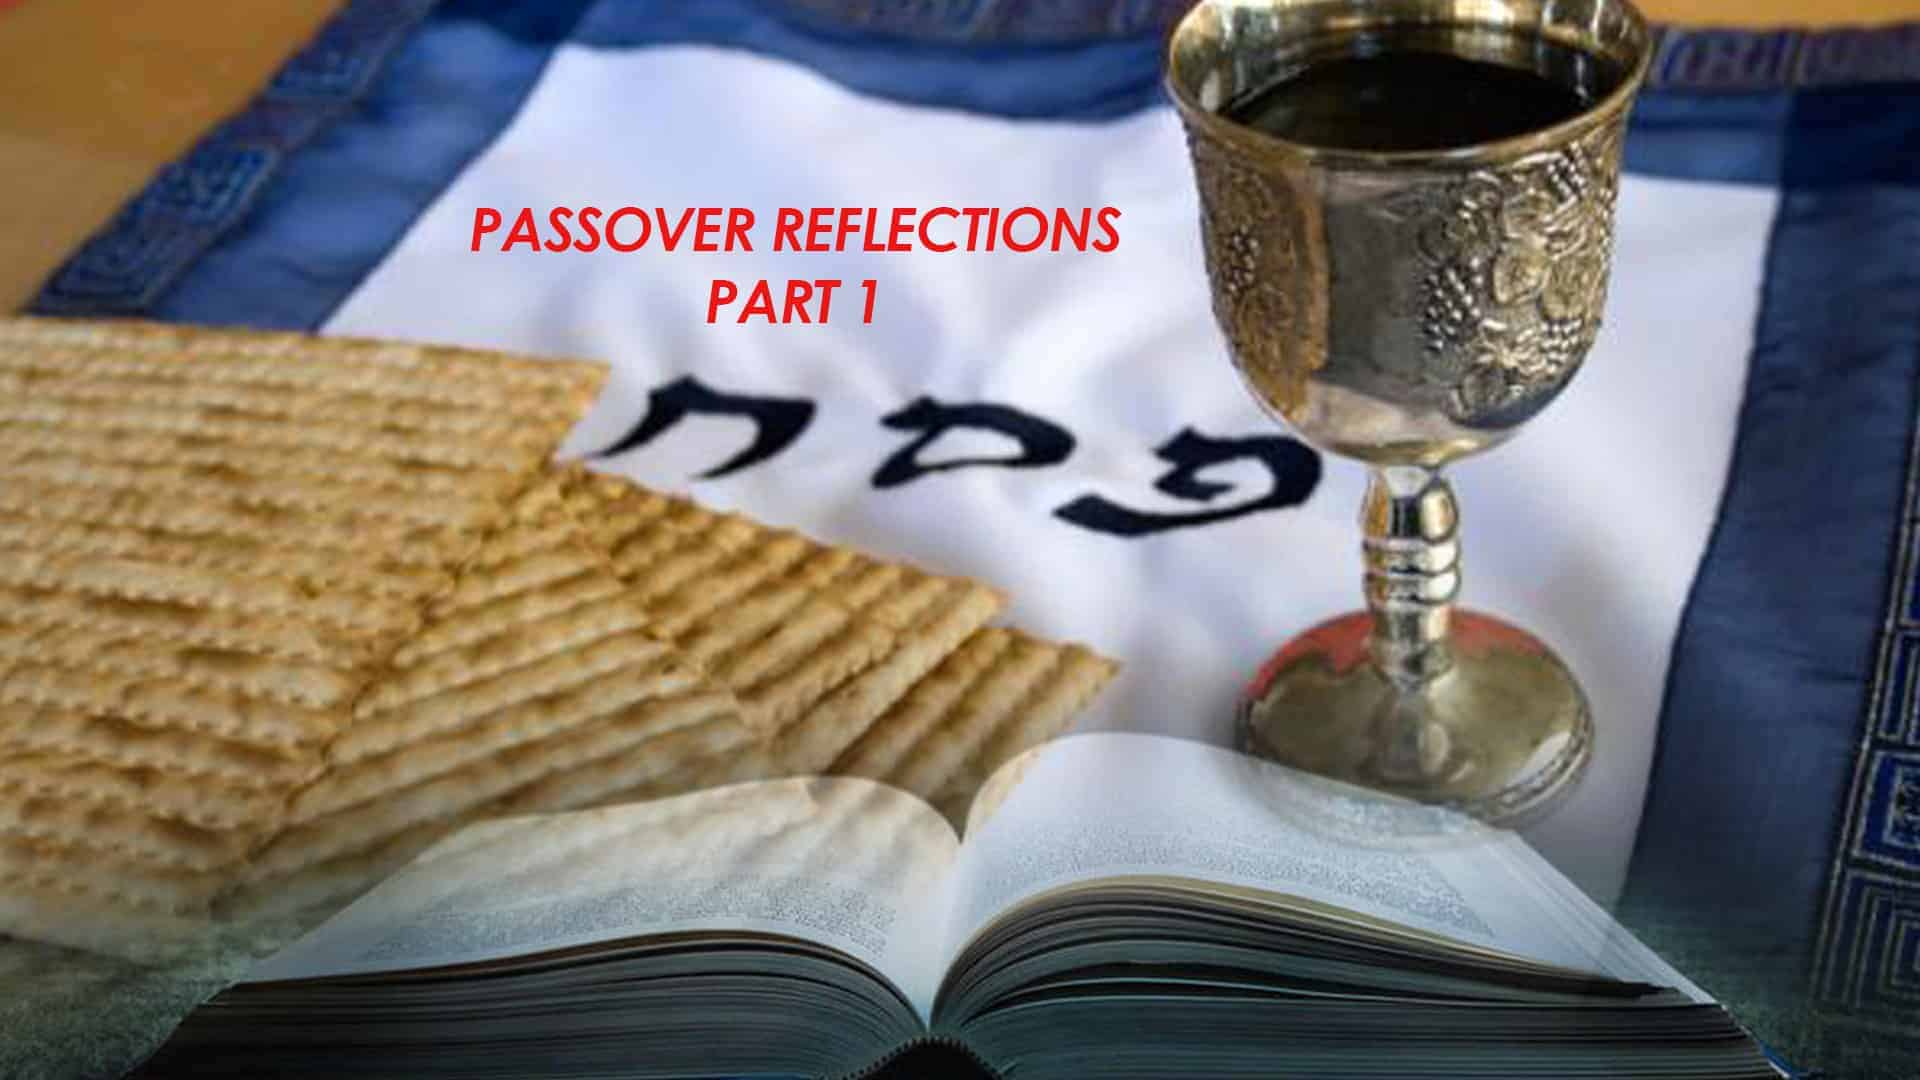 Passover Reflections Part 1